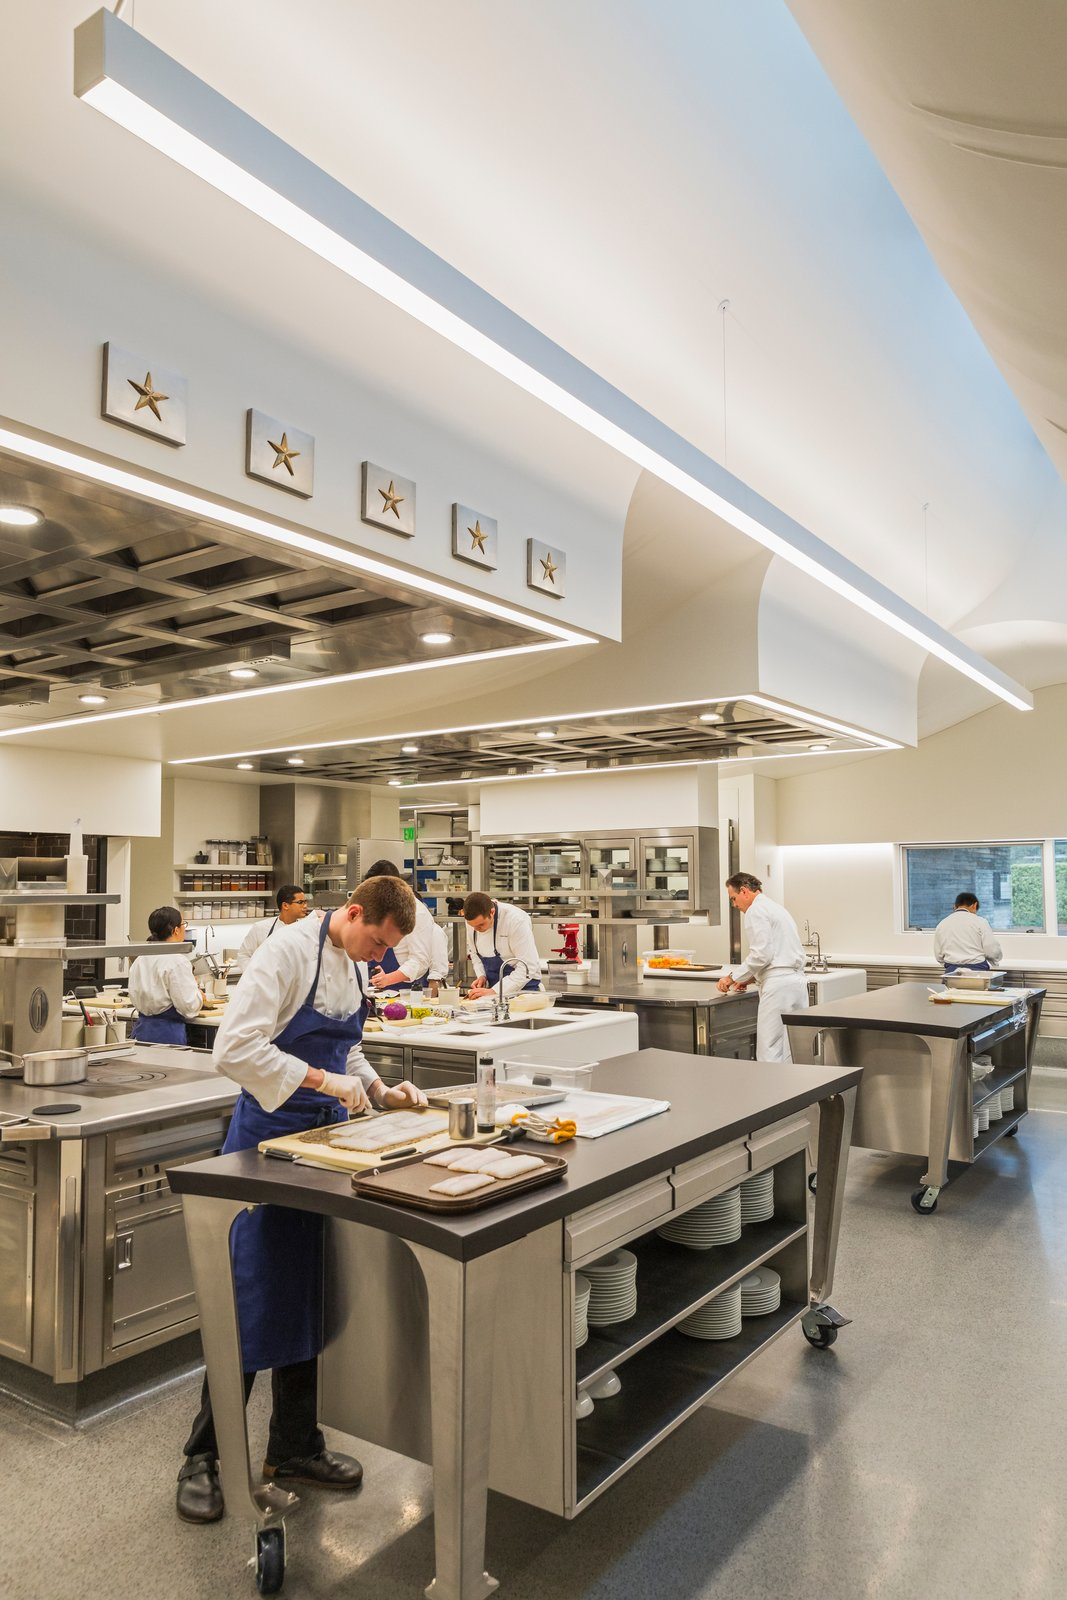 The 2,000-square-foot kitchen provides a comfortable, light-filled working space for the chefs and is configured as a single, continuous space. Tagged: Kitchen, Metal Cabinet, Cooktops, Recessed Lighting, and Terrazzo Floor.  Photo 8 of 12 in A Look Inside The French Laundry's Stunning $10M Renovation